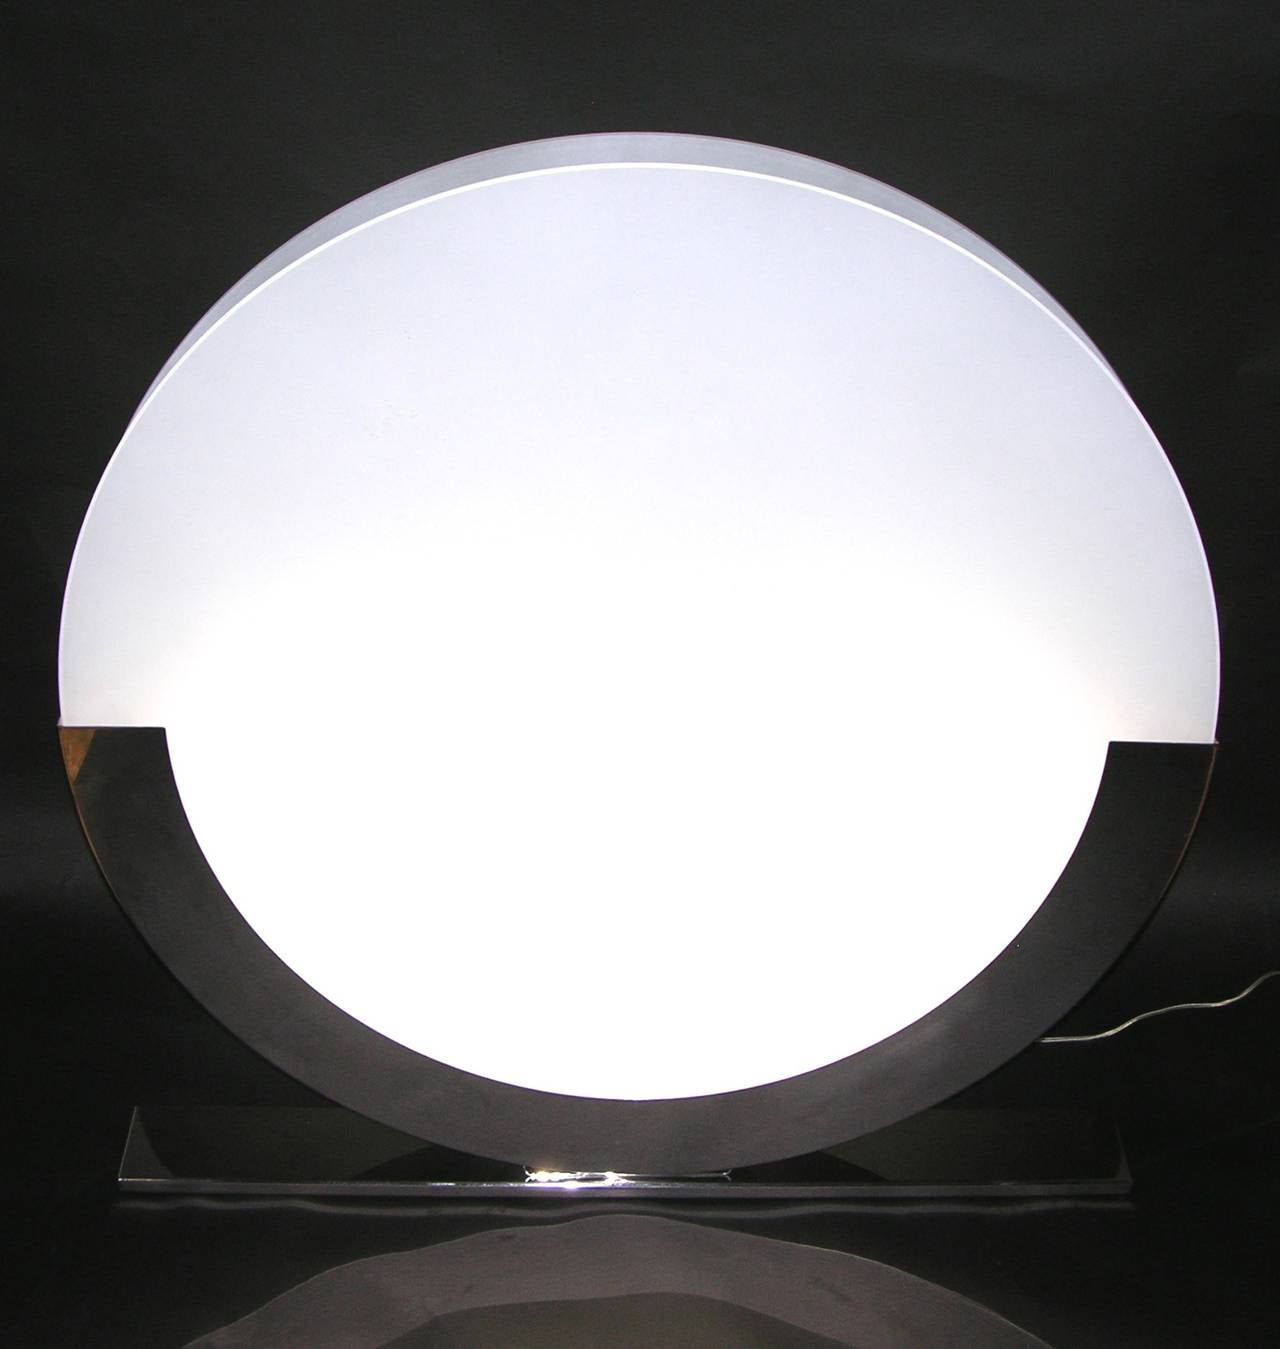 Monumental italian design pair of white and chrome round floor or monumental italian design pair of white and chrome round floor or table lamps 2 geotapseo Images